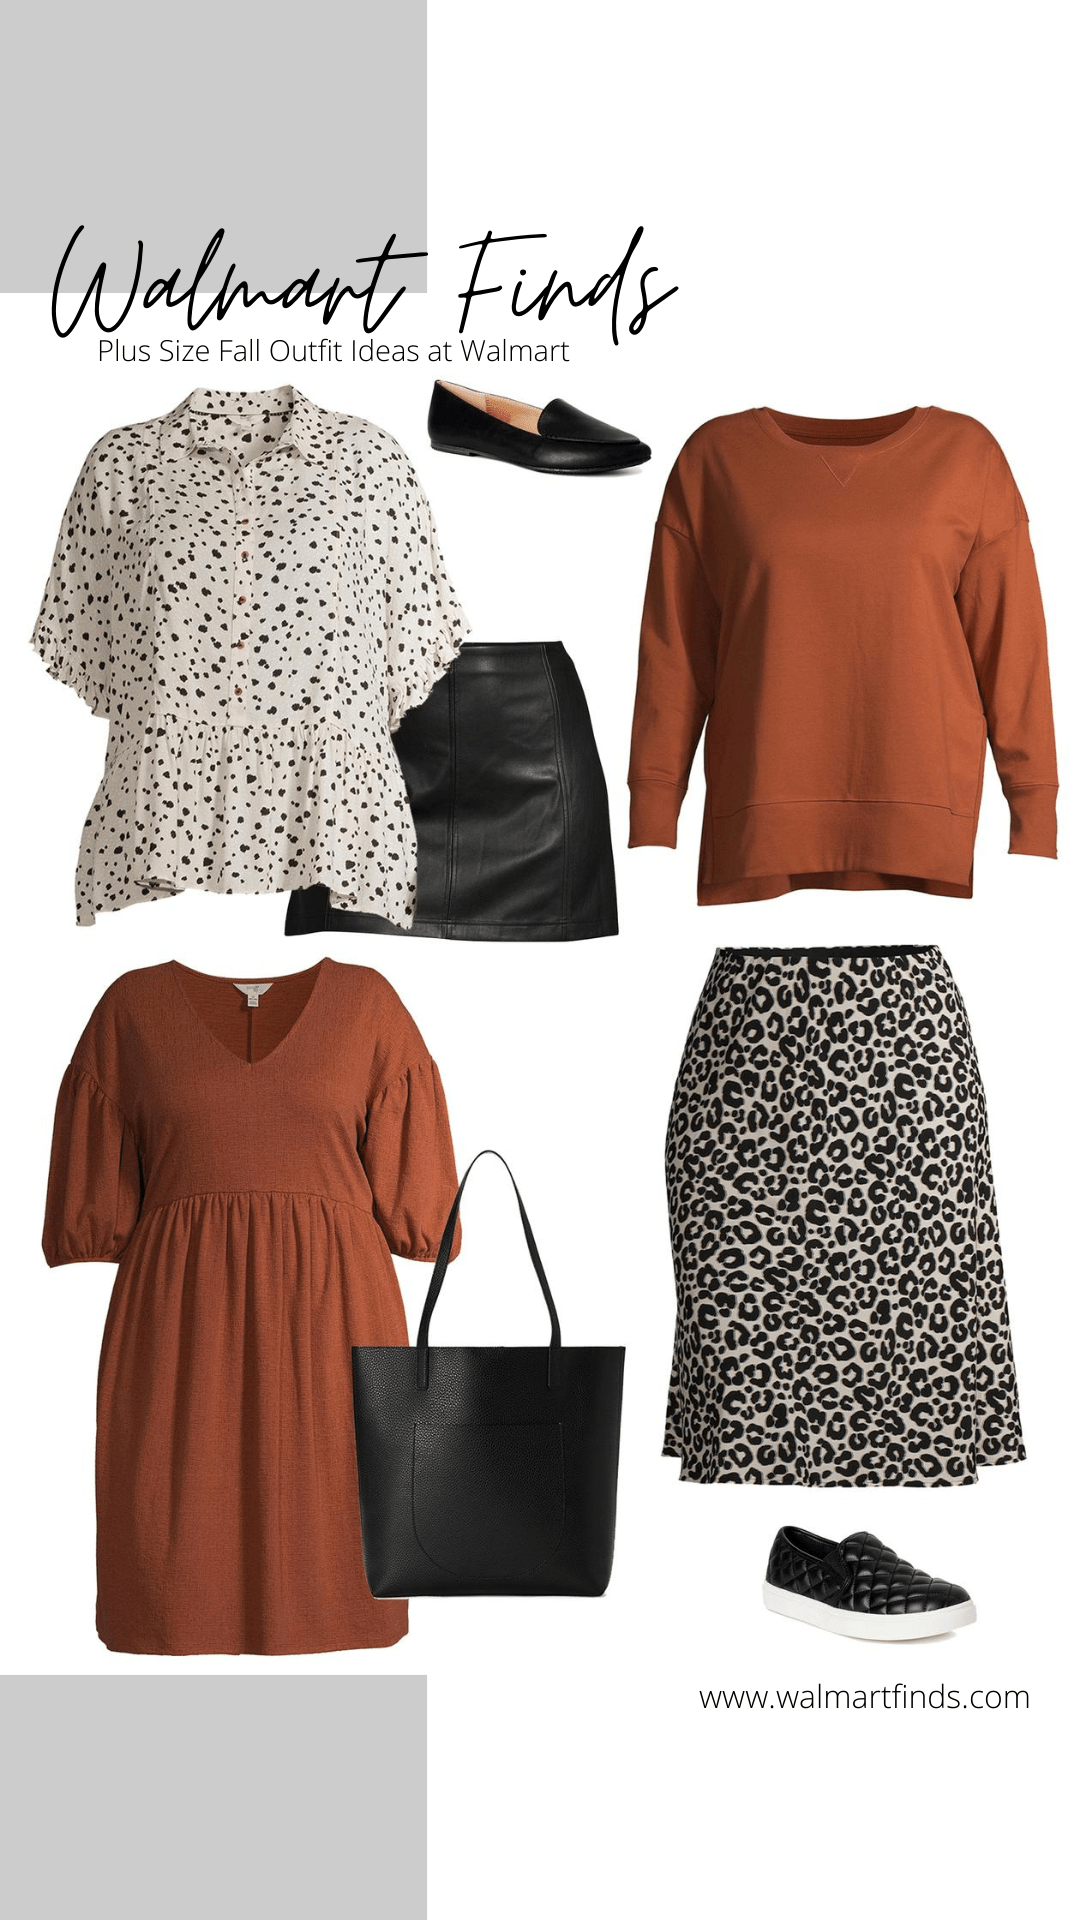 plus size fall outfit ideas at walmart